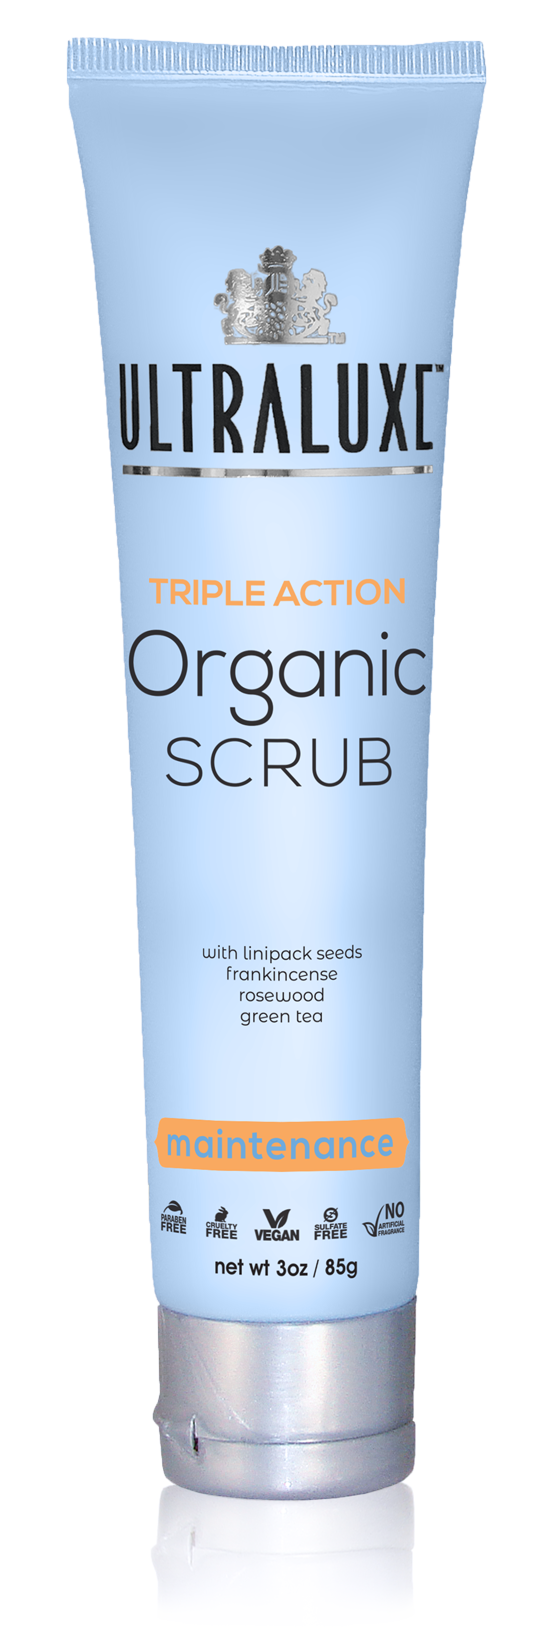 Triple Action Organic Scrub - Maintenance